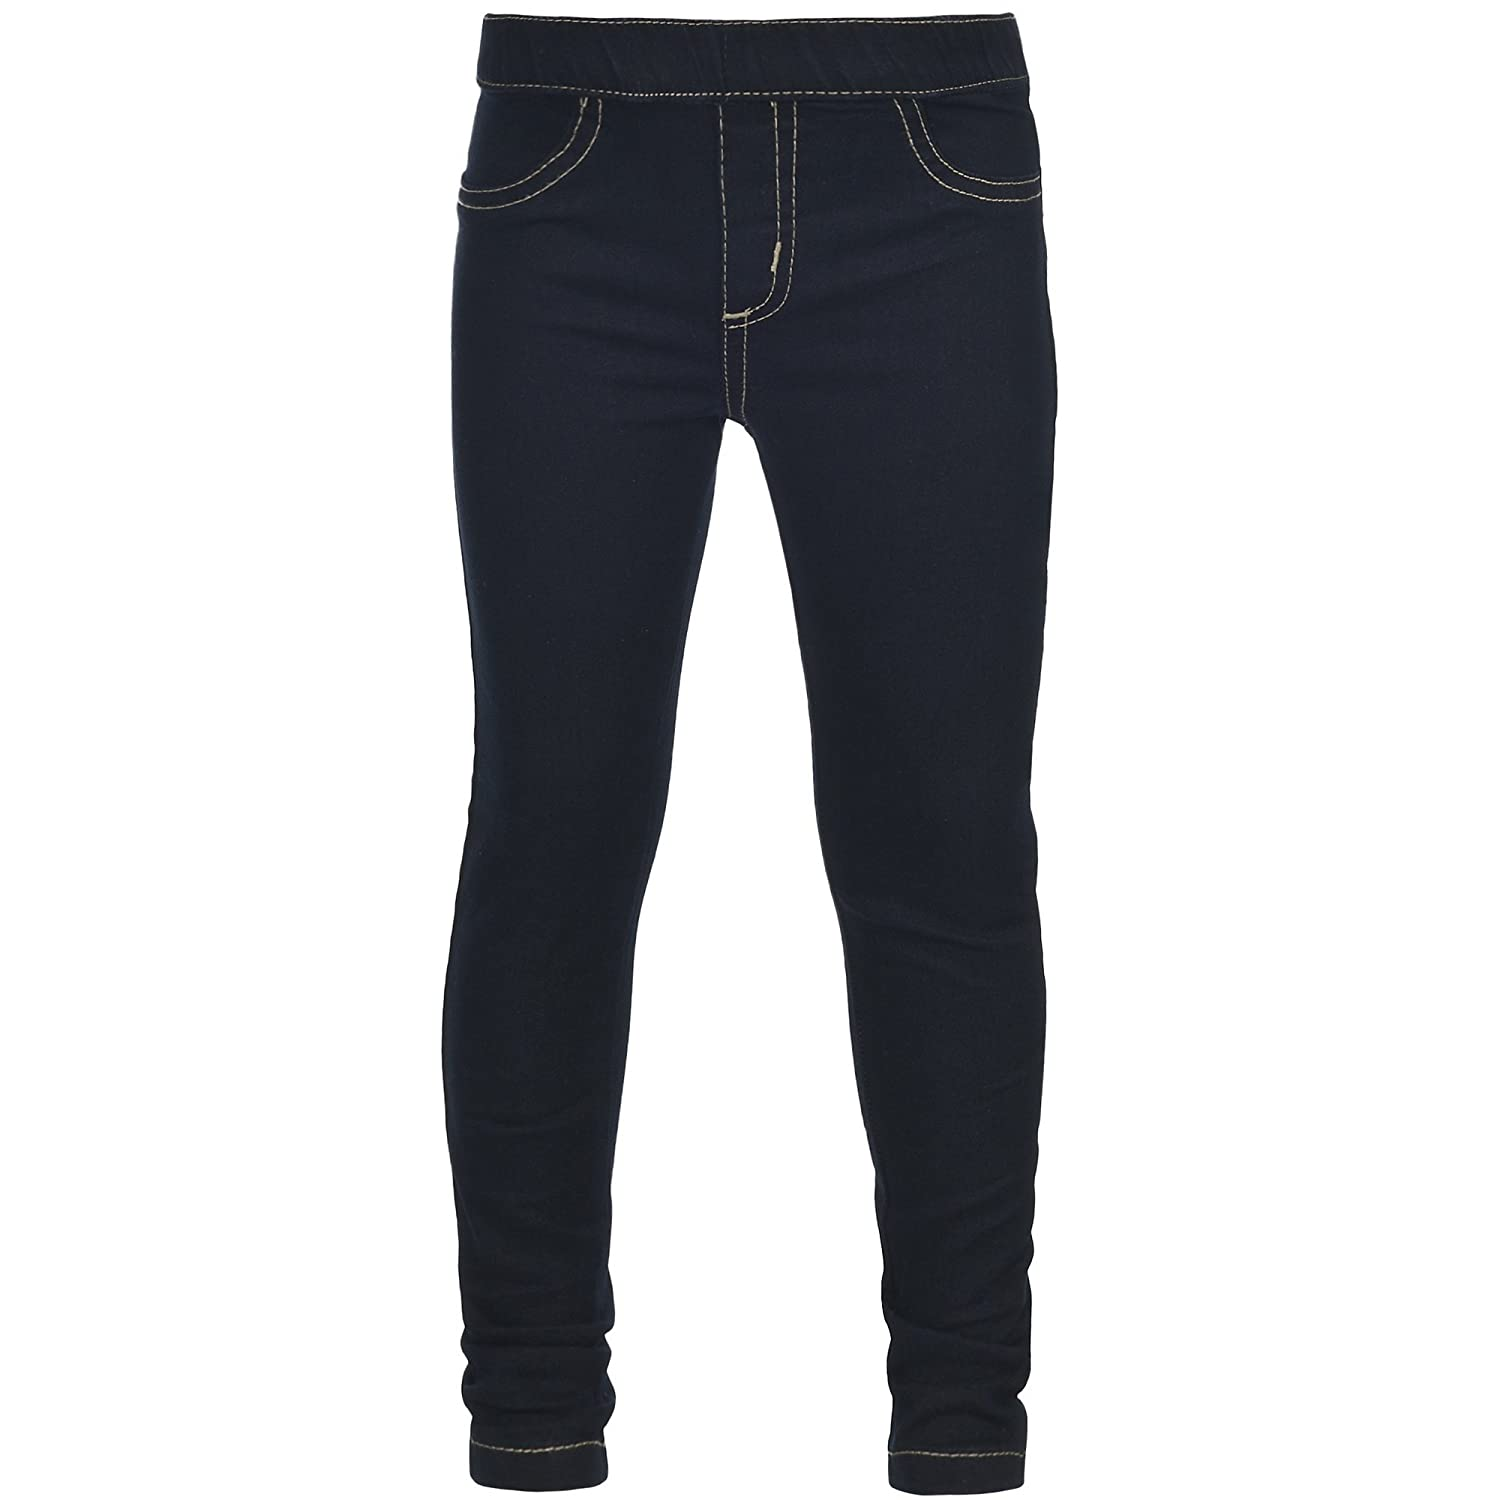 Trespass Childrens Girls Favourite Denim Skinny Jeans